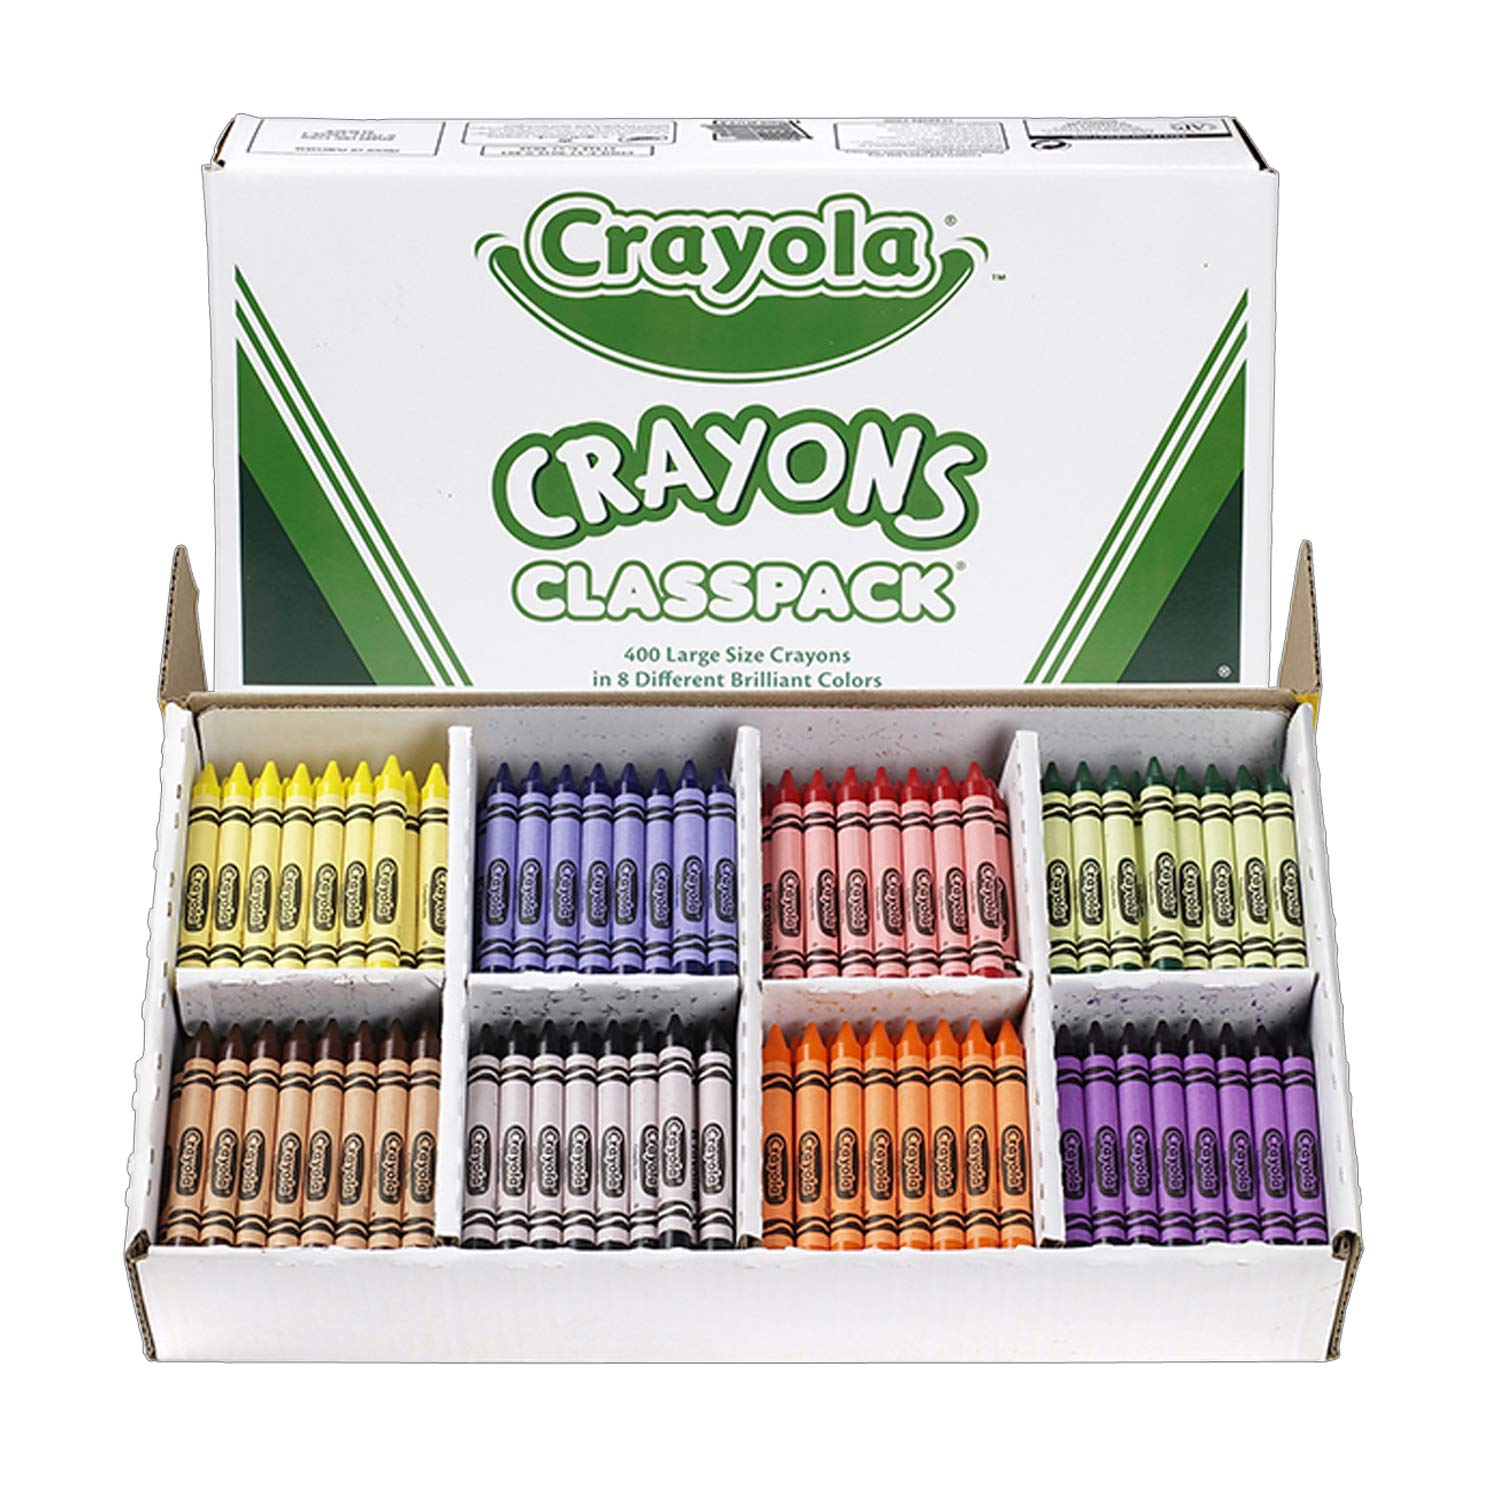 Crayola Large Crayon Classpack, Back to School Supplies, 8 Colors, 400 Count by Crayola